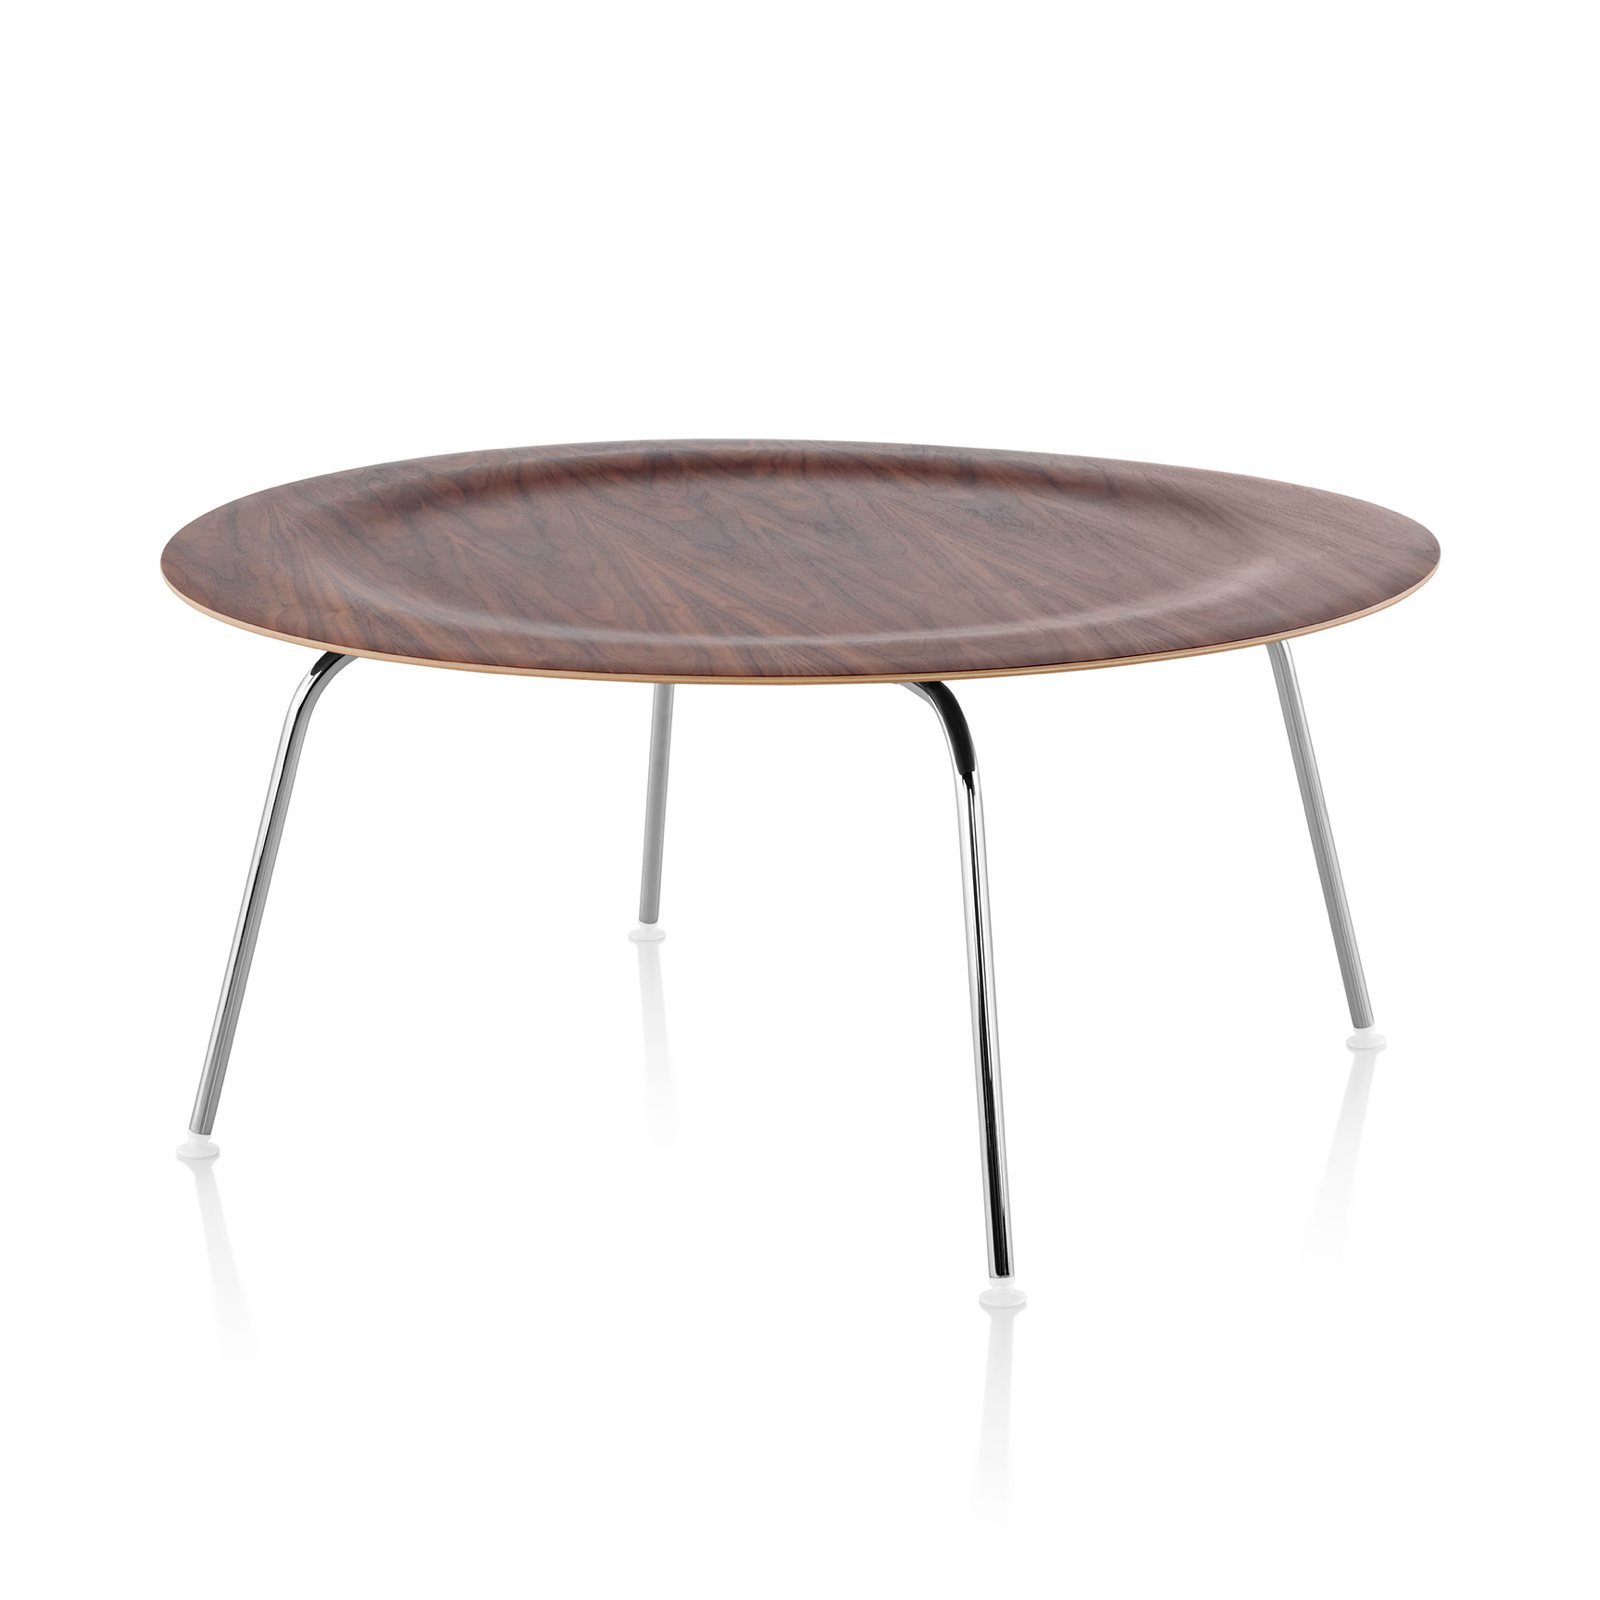 Eames Molded Plywood Coffee Table Metal Base, Walnut Top, Trivalent Chrome  Base.